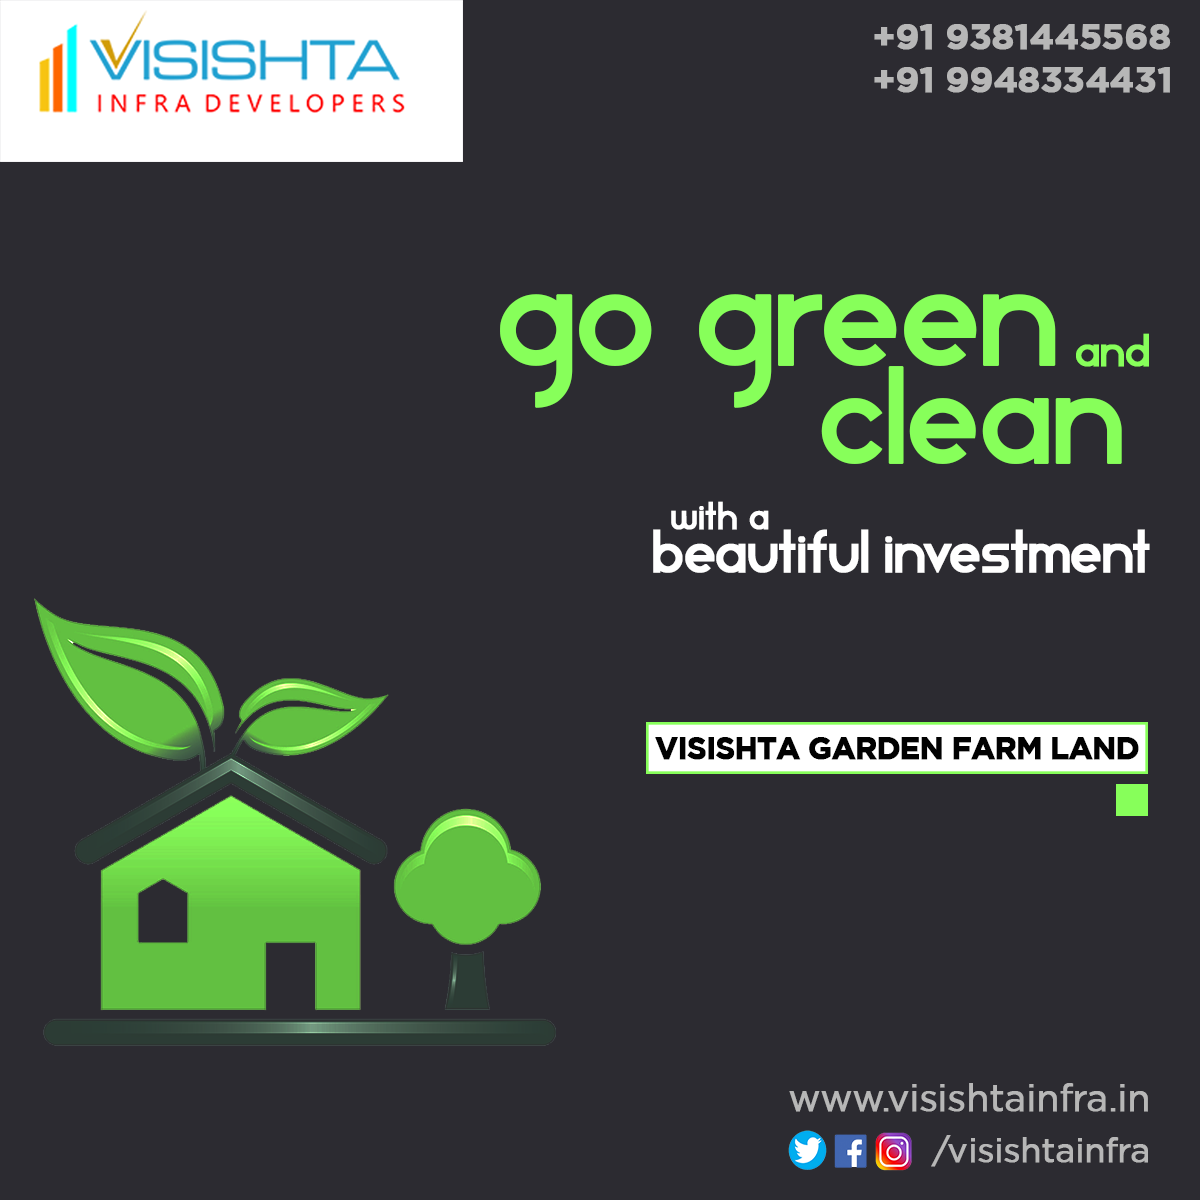 Go green and clean with a beautiful investmentVisishta